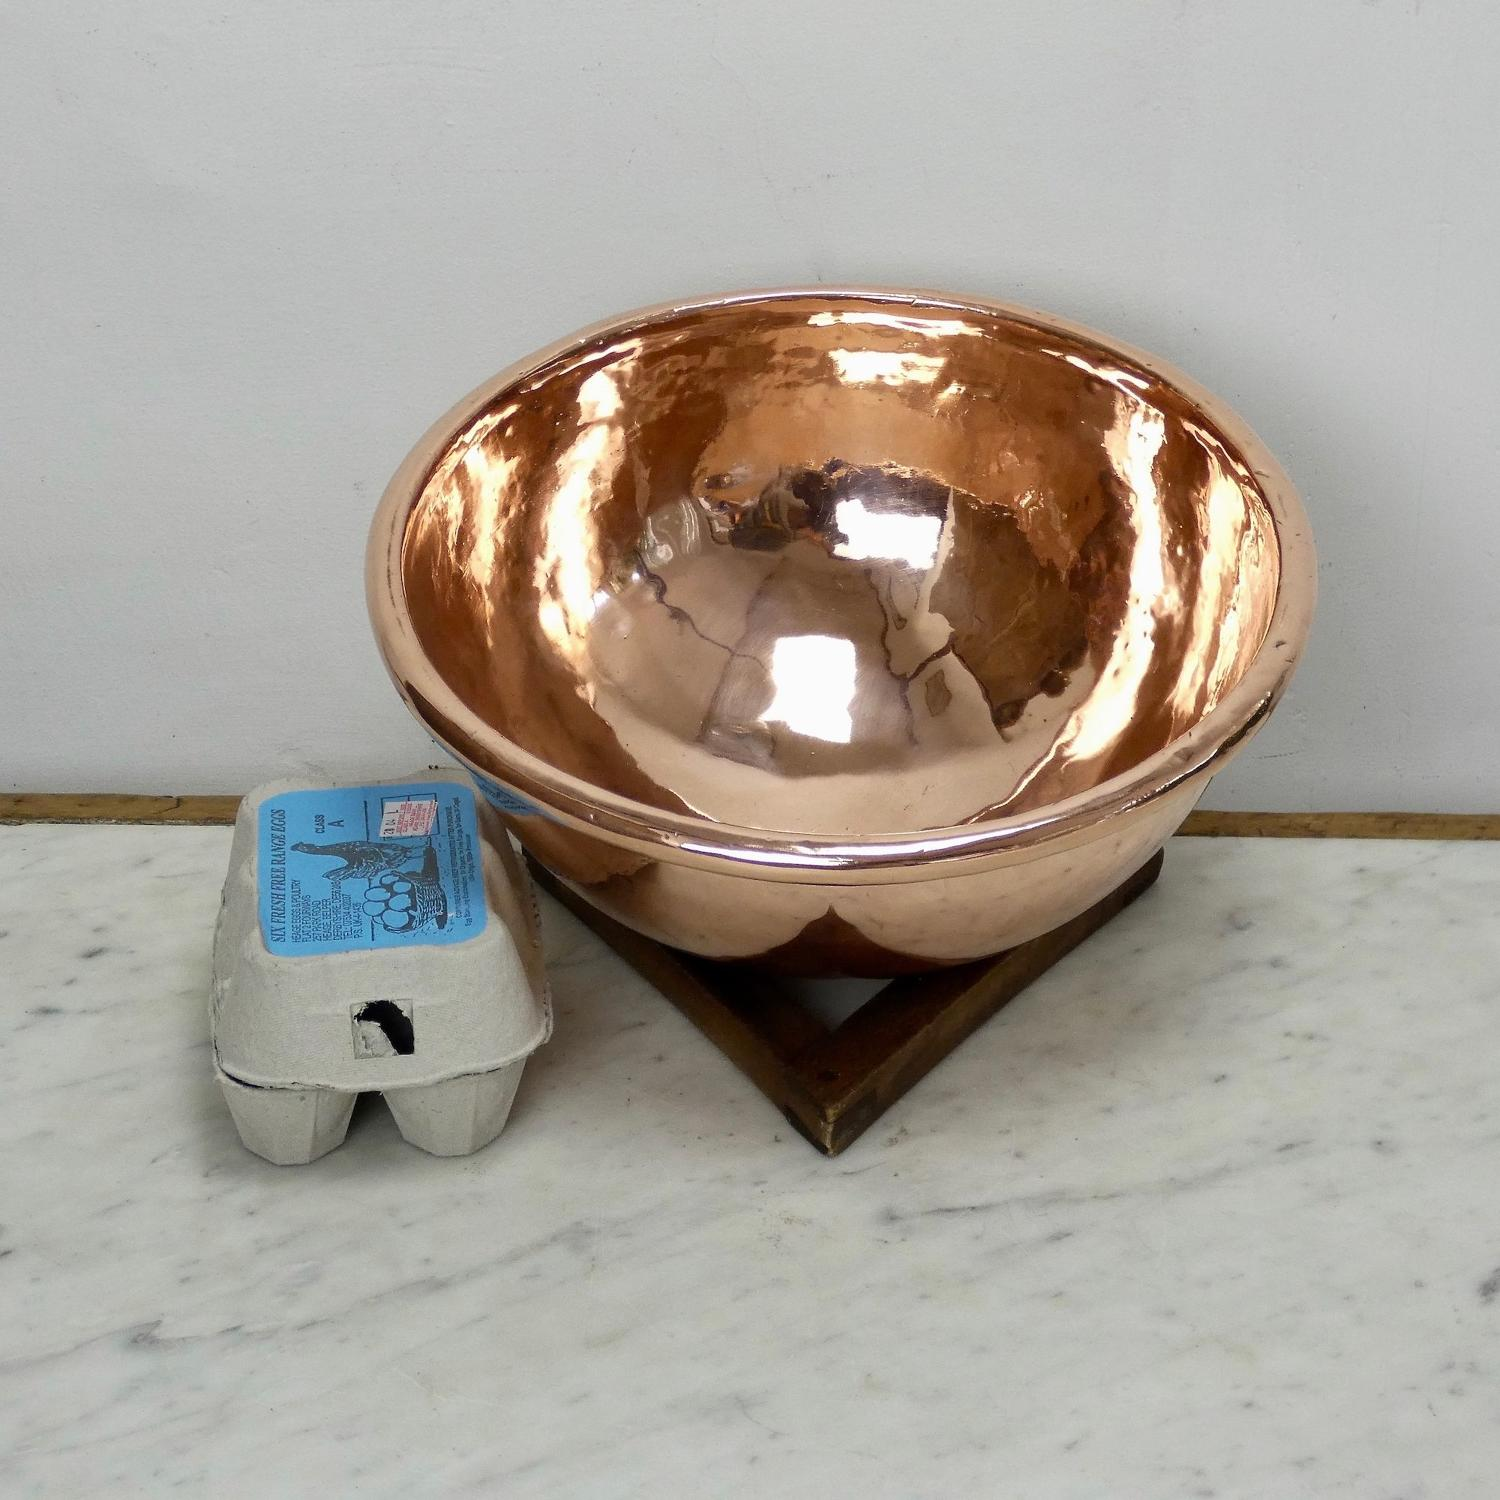 Small French copper egg bowl